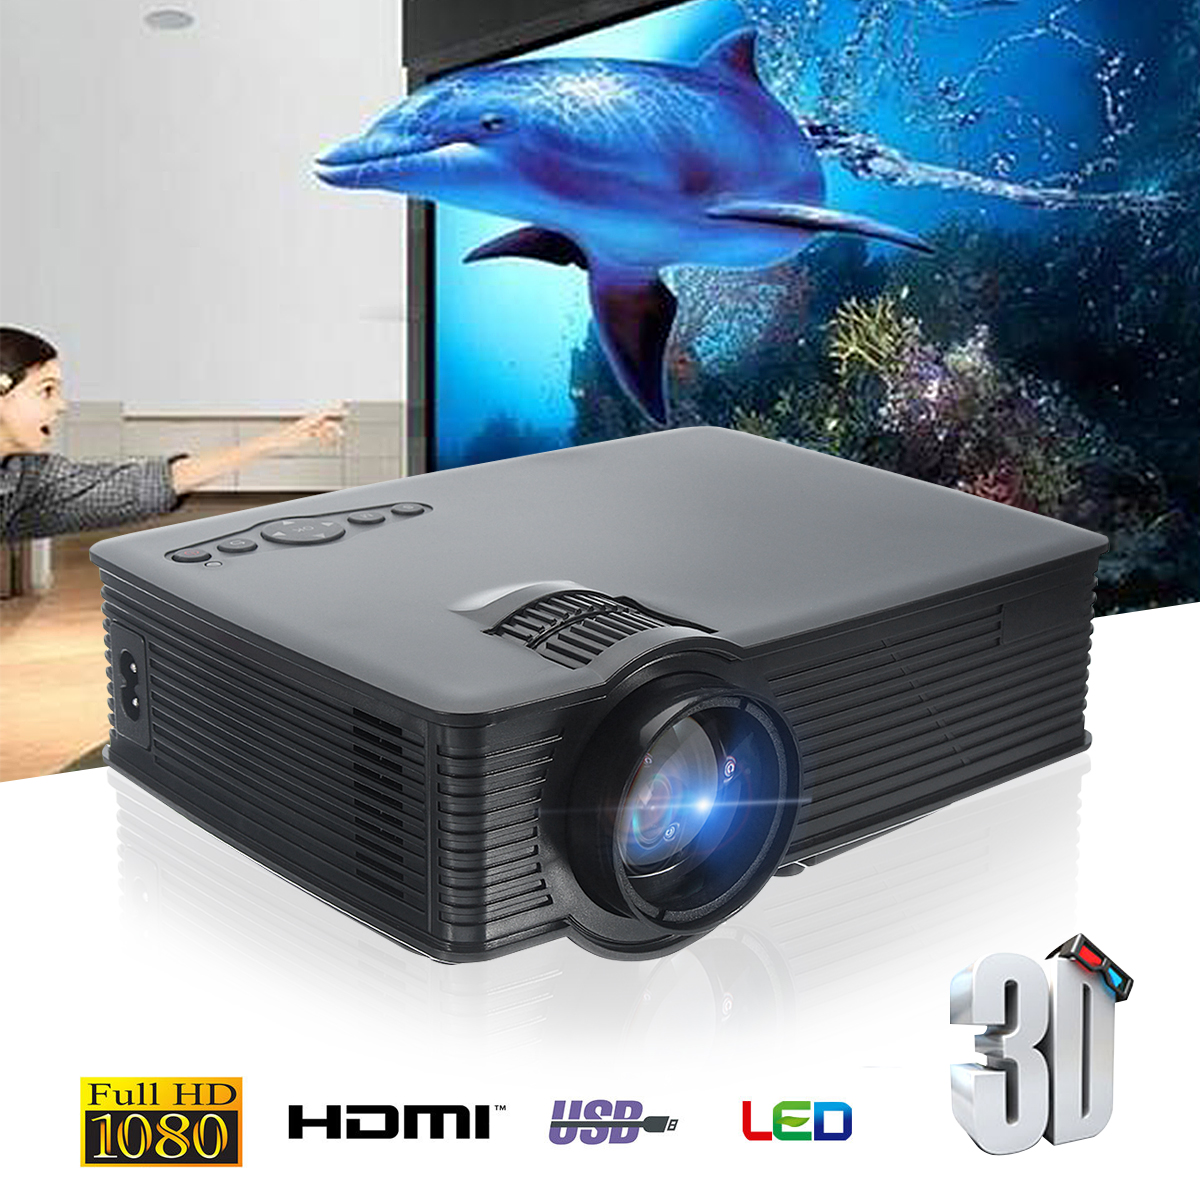 Thinyou GP-9 3000 Lumens WIFI LED Projector Black Mini Projector HDMI Digital Home Theater support multiple extensions great spaces home extensions лучшие пристройки к дому